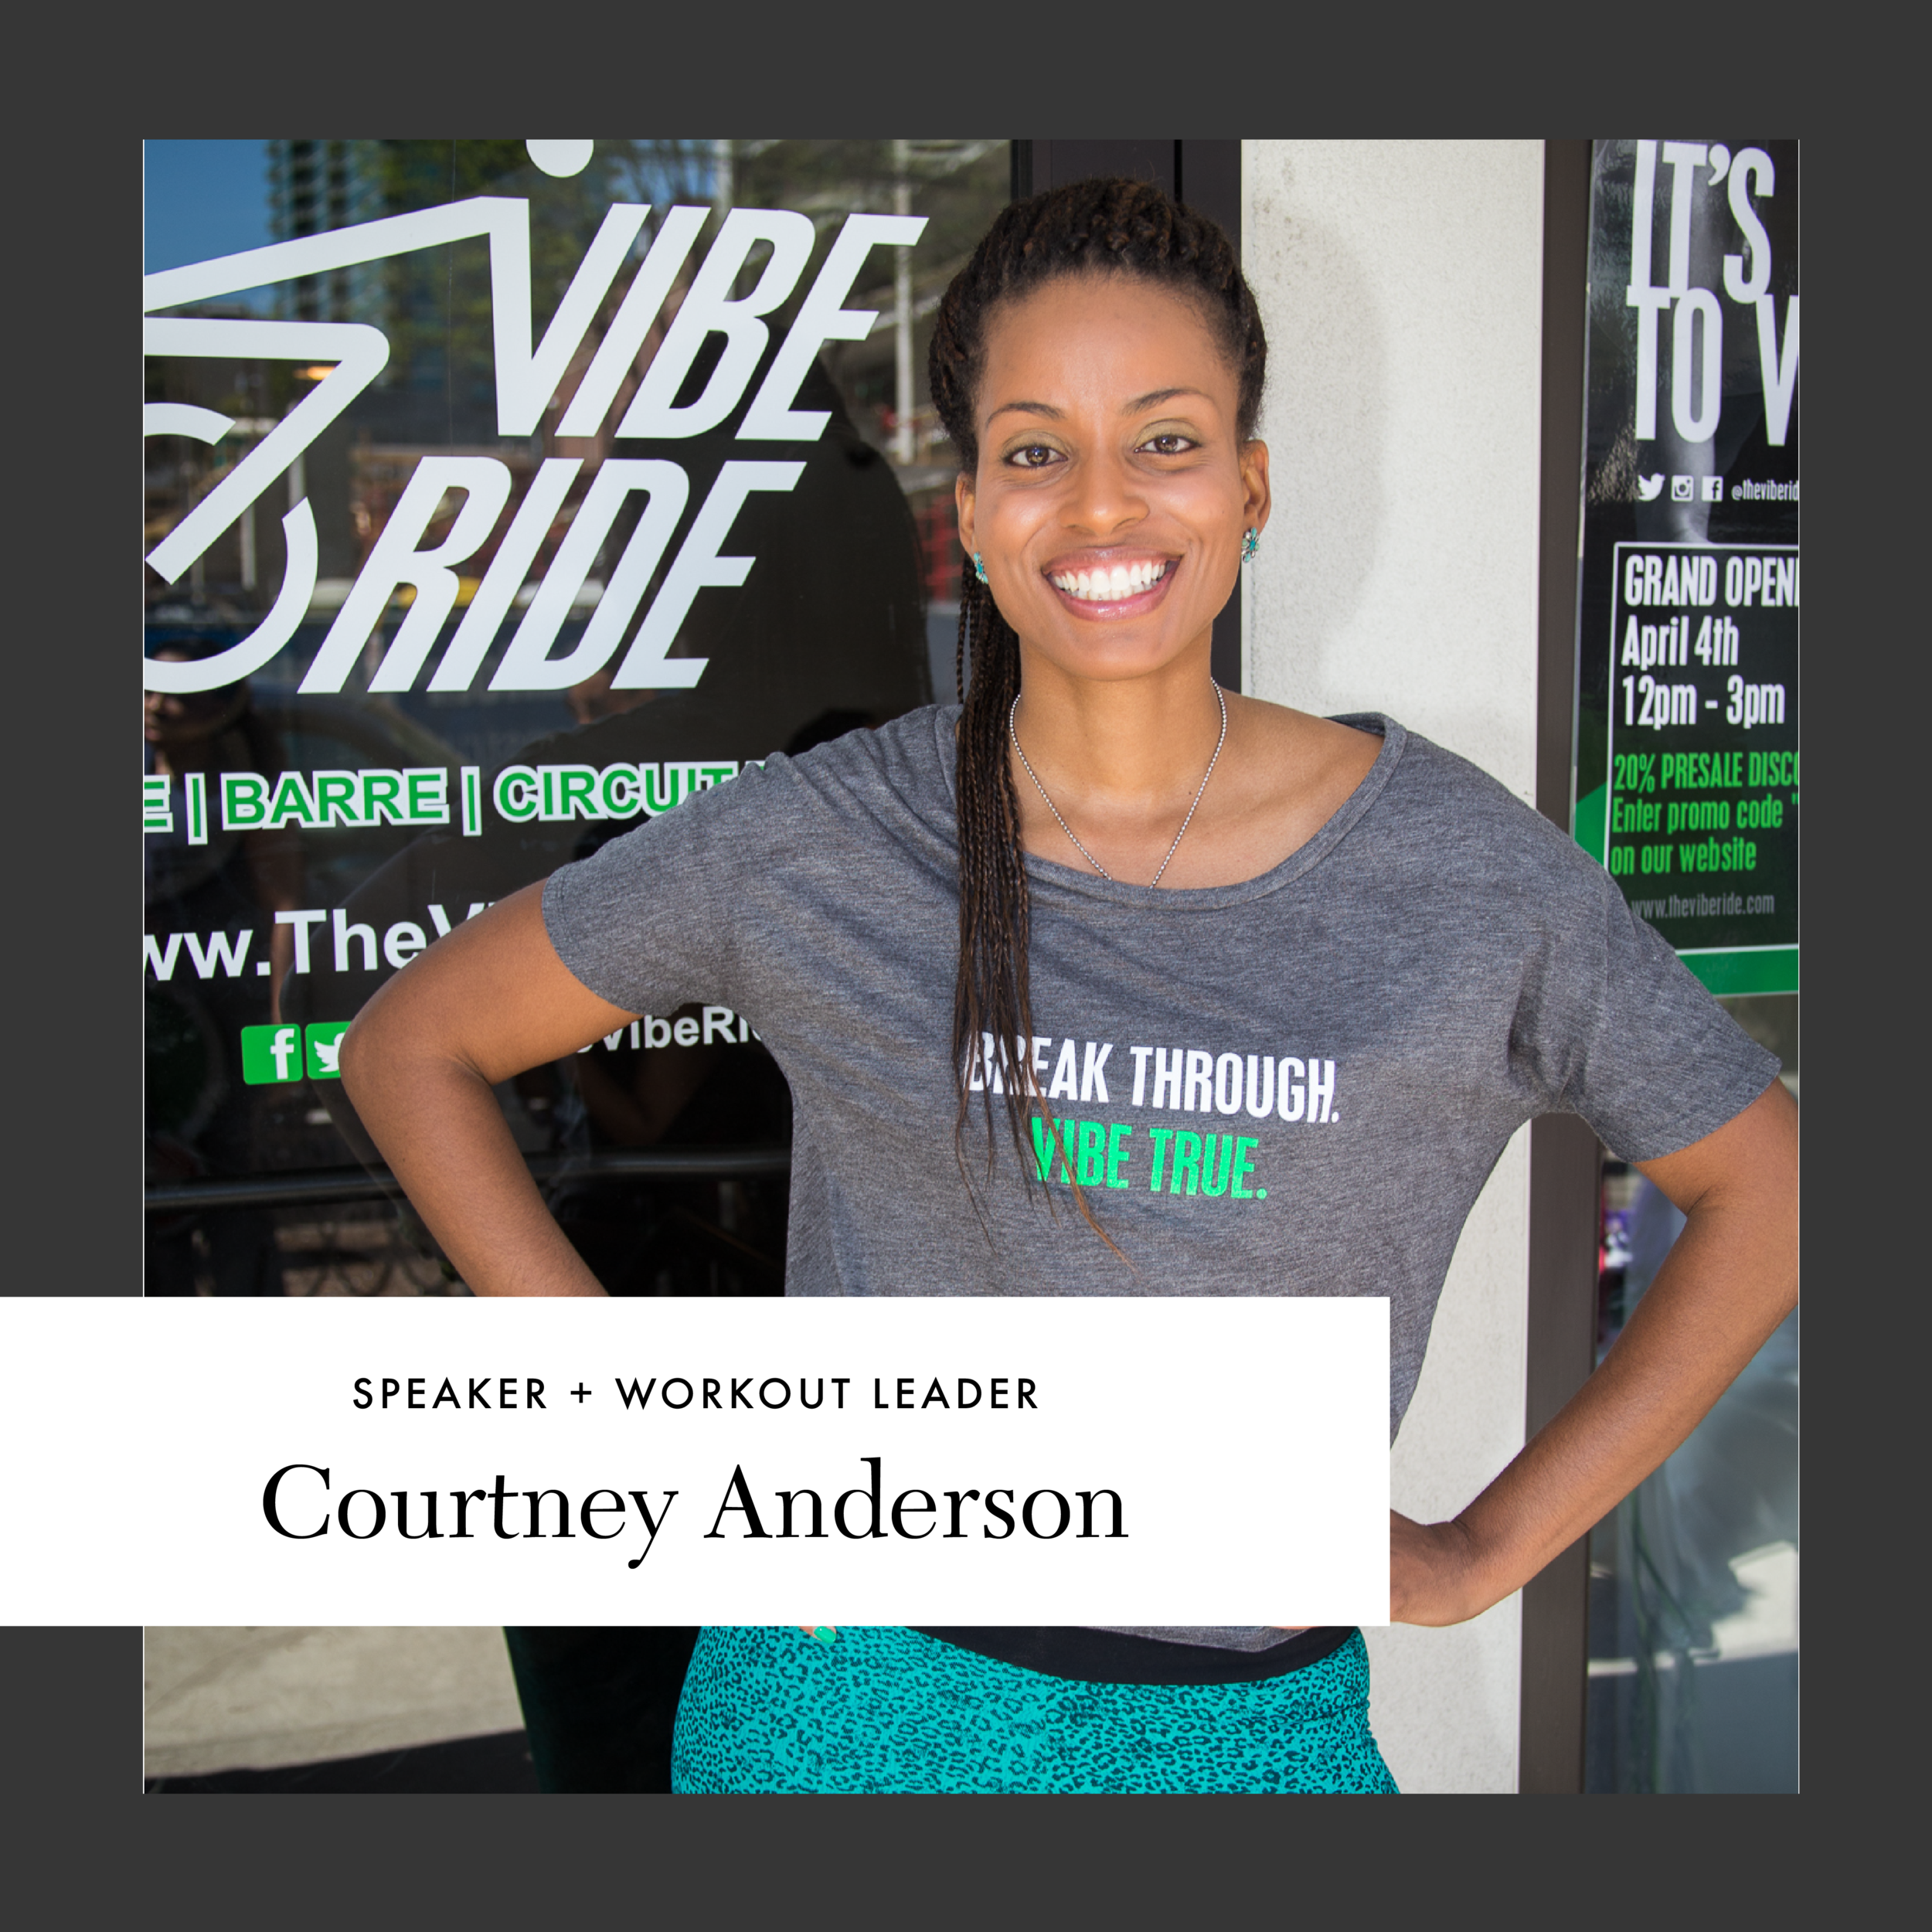 Courtney Anderson | SPEAKER + WORKOUT LEADER   CEO and Founder of  The Vibe Ride  and  SPINich Smoothie Bar , tenured law professor at Georgia State University College of Law, Boss Babe